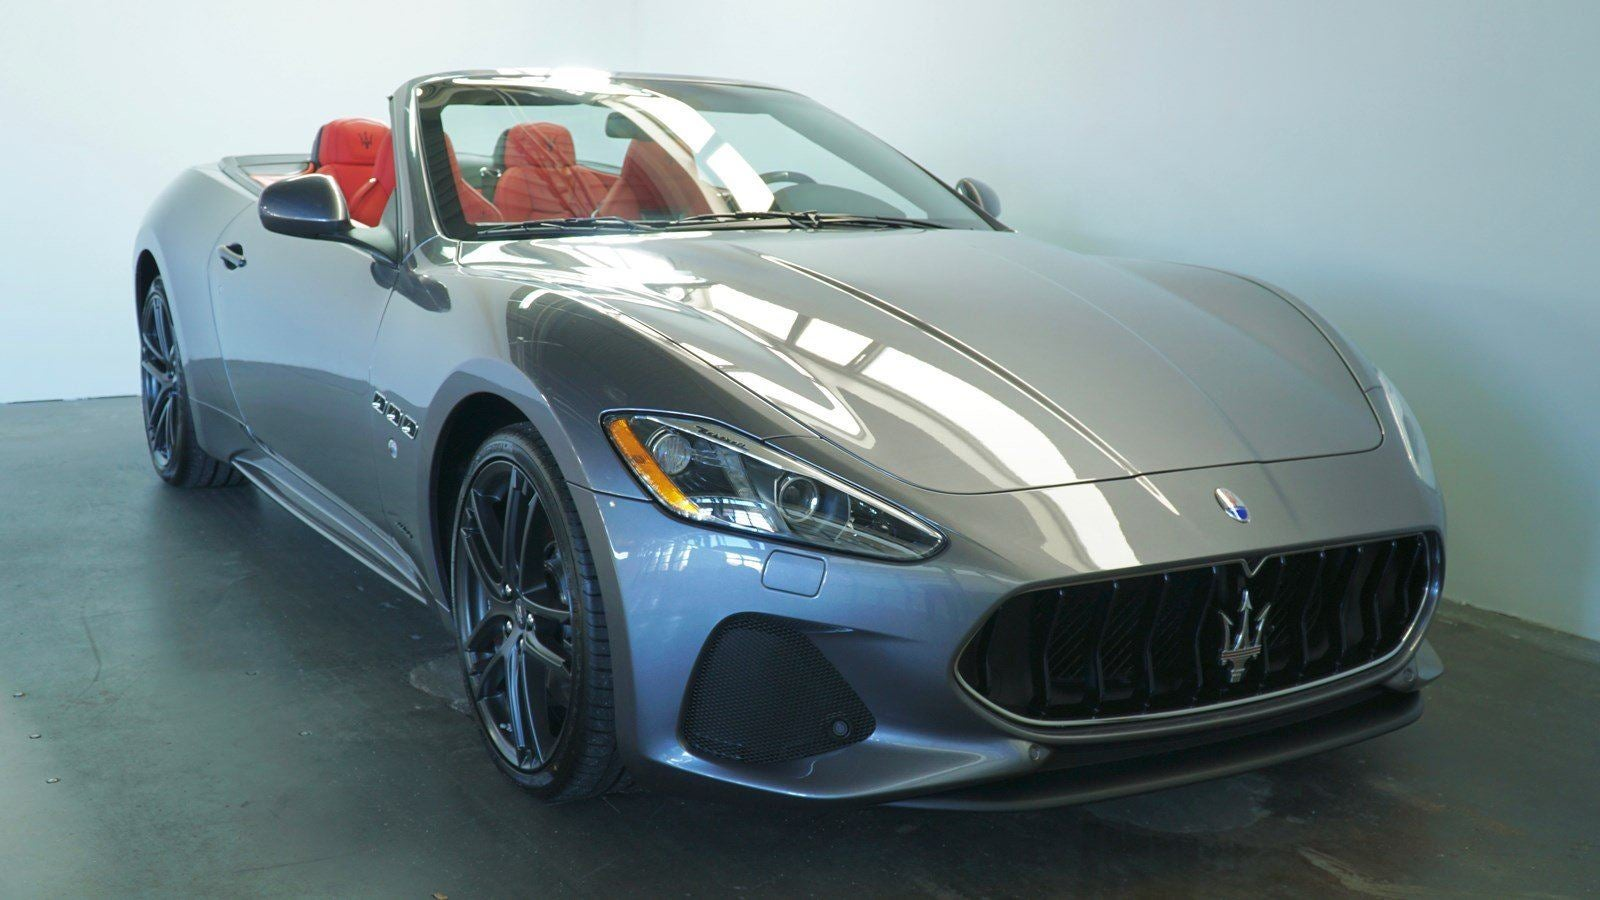 Convertible Cars For Sale In Charlotte Nc